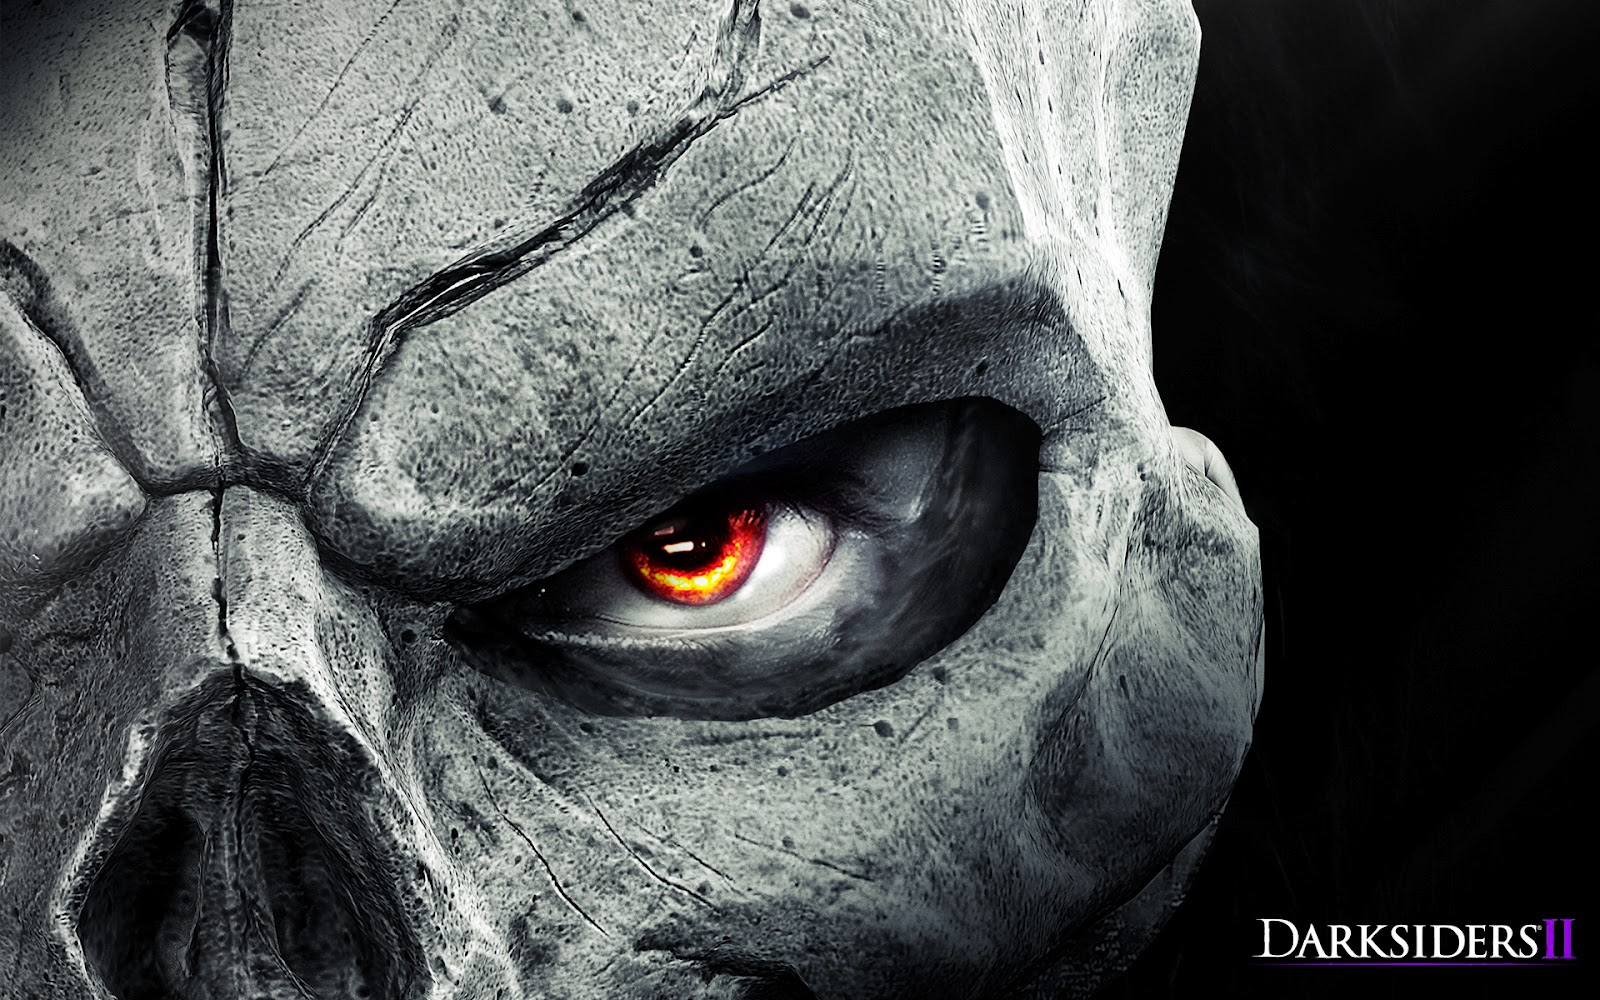 darksiders 2 wallpaper 1920x1080 game blog darksiders 2 download 1600x1000